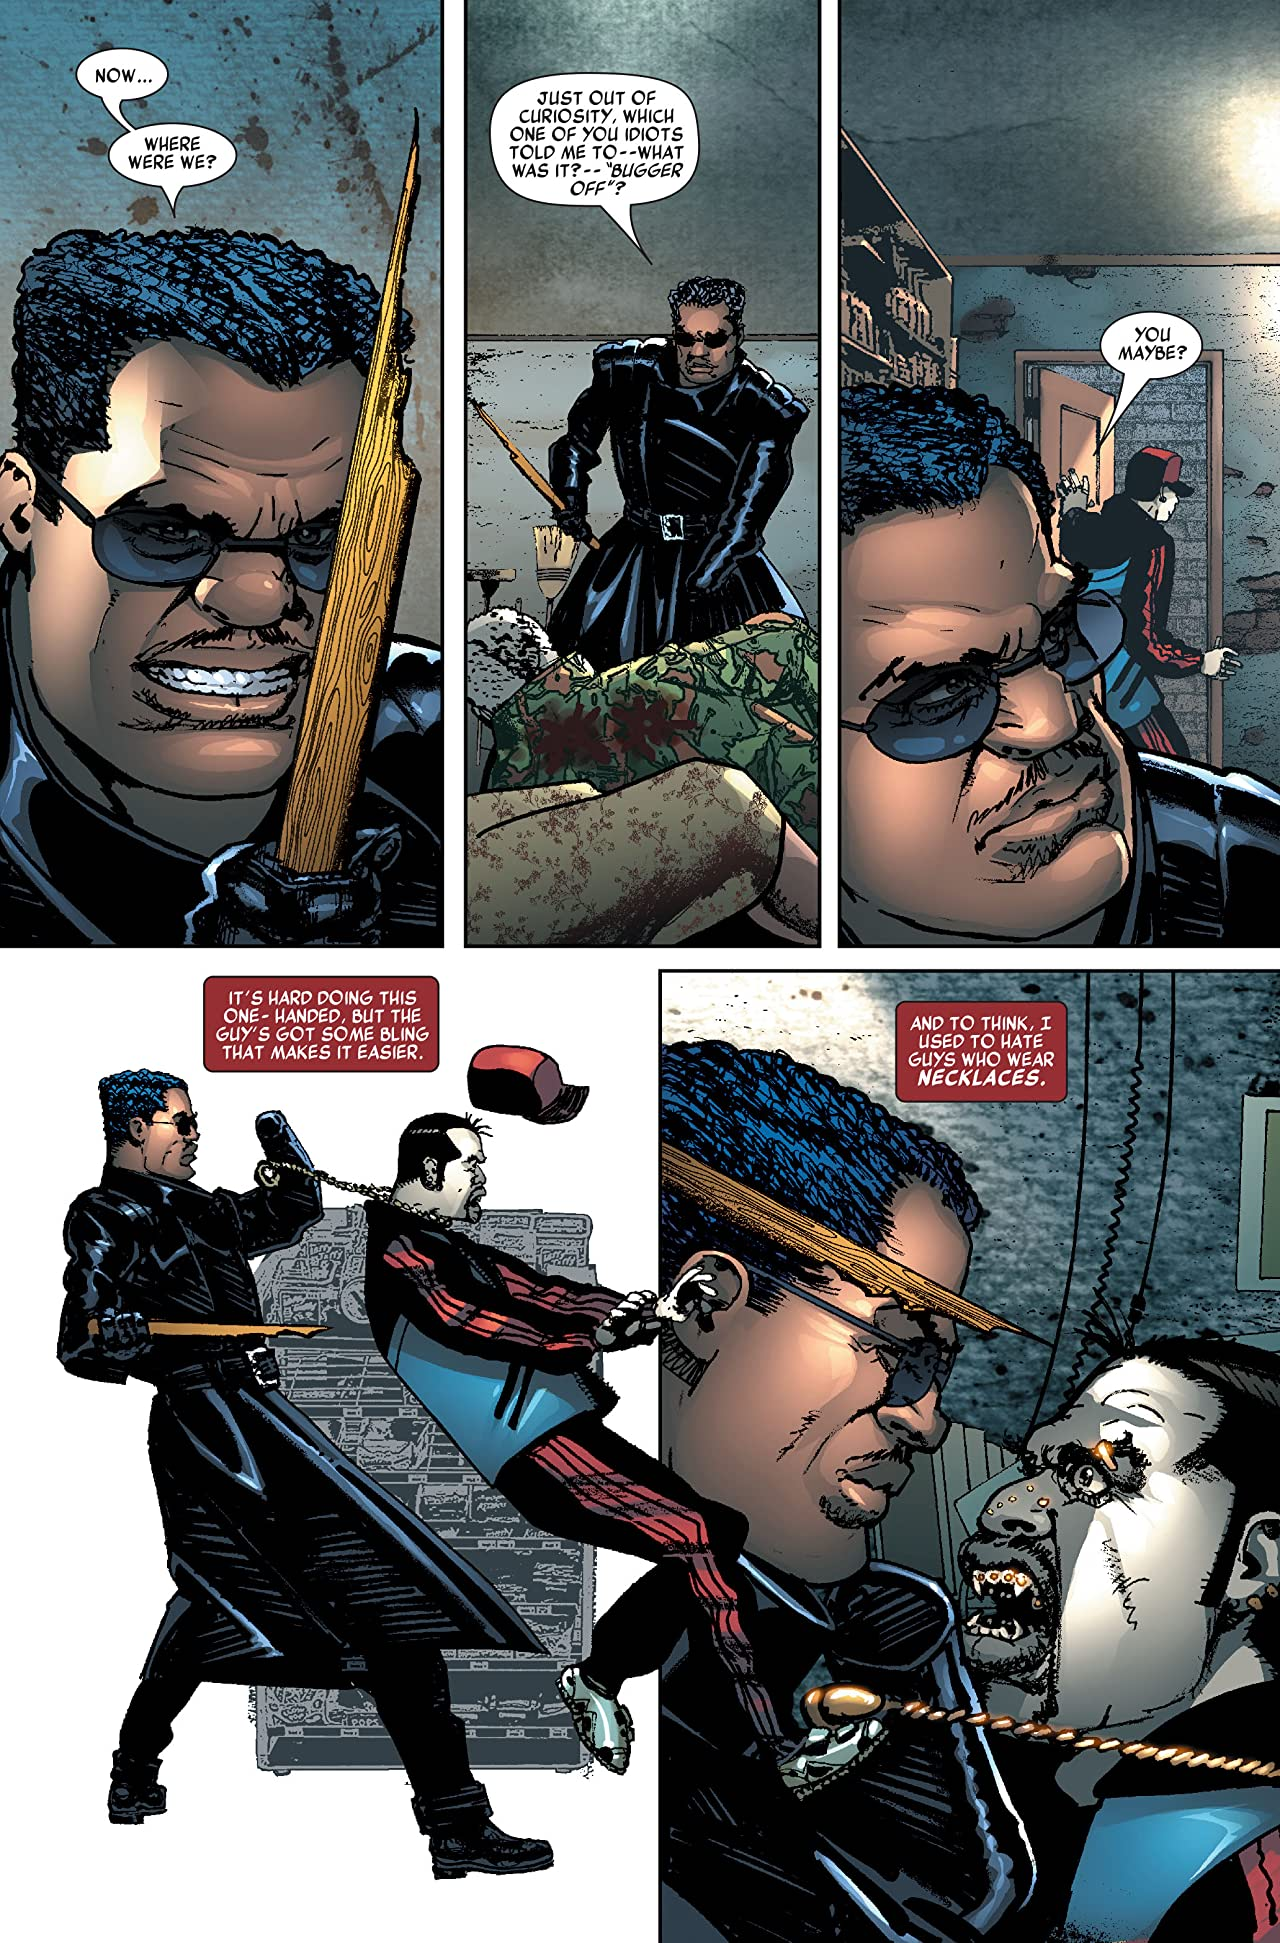 Blade Vol. 2: Sins of the Father